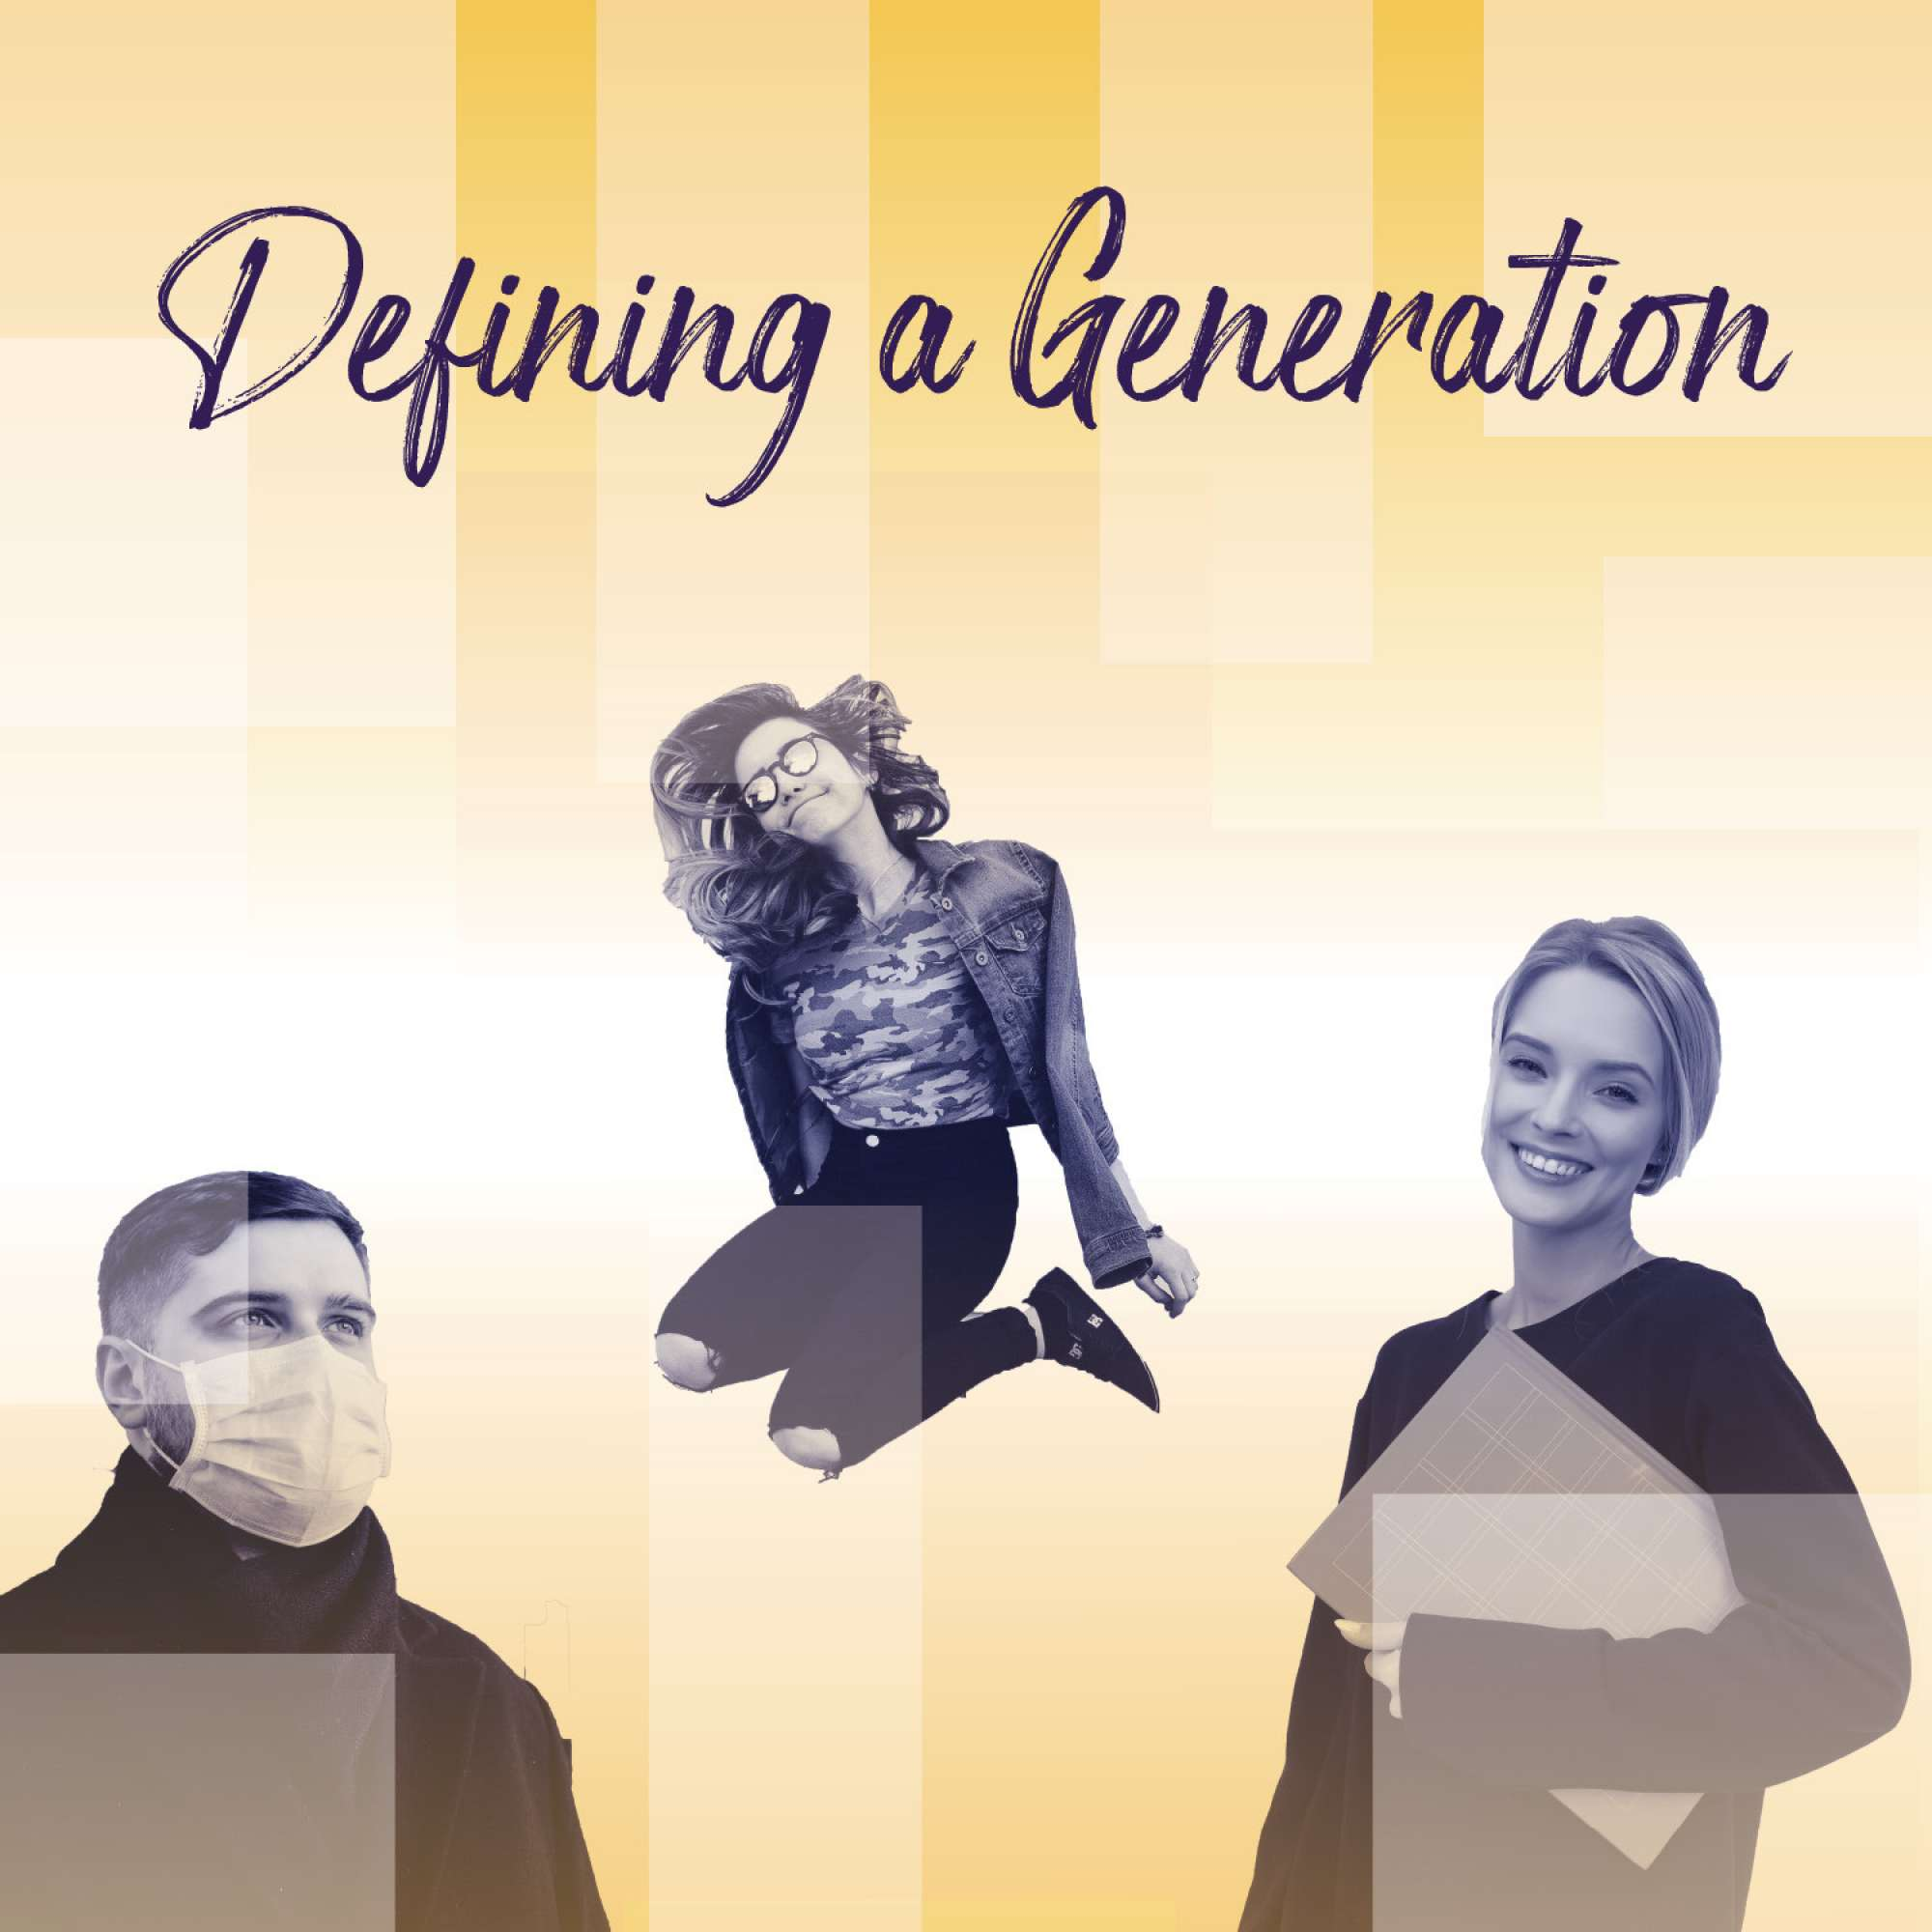 graphic for defining a generation